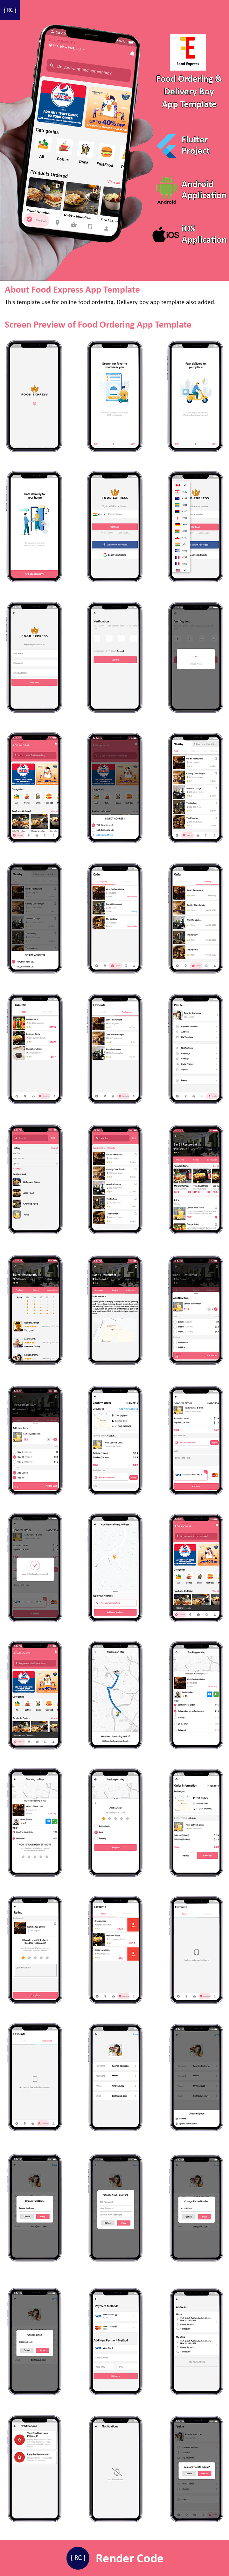 Flutter Food | 2 Apps | Food Ordering App + Delivery Boy App Template in Flutter - 7